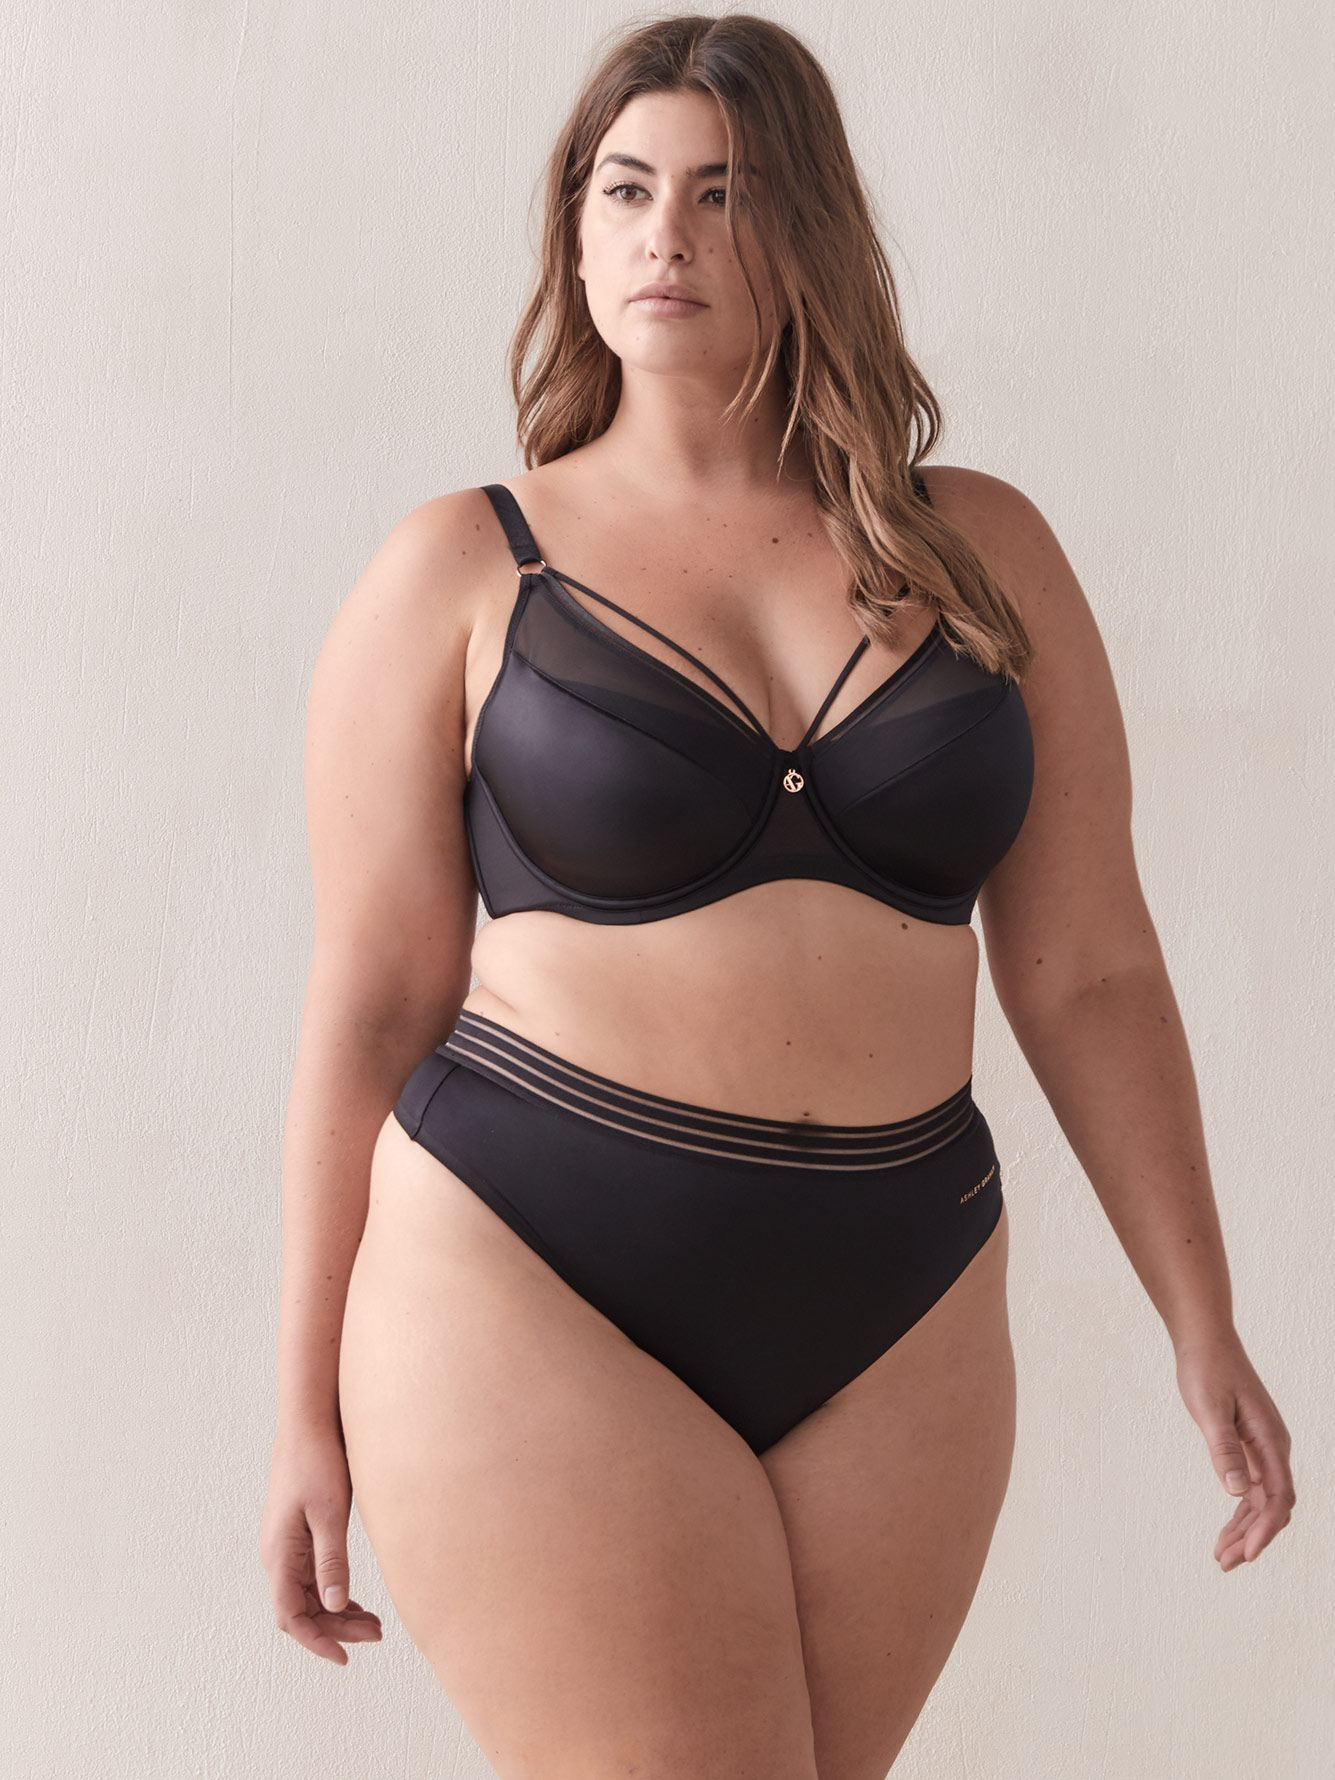 Ashley Graham - Demi Cup Diva Bra